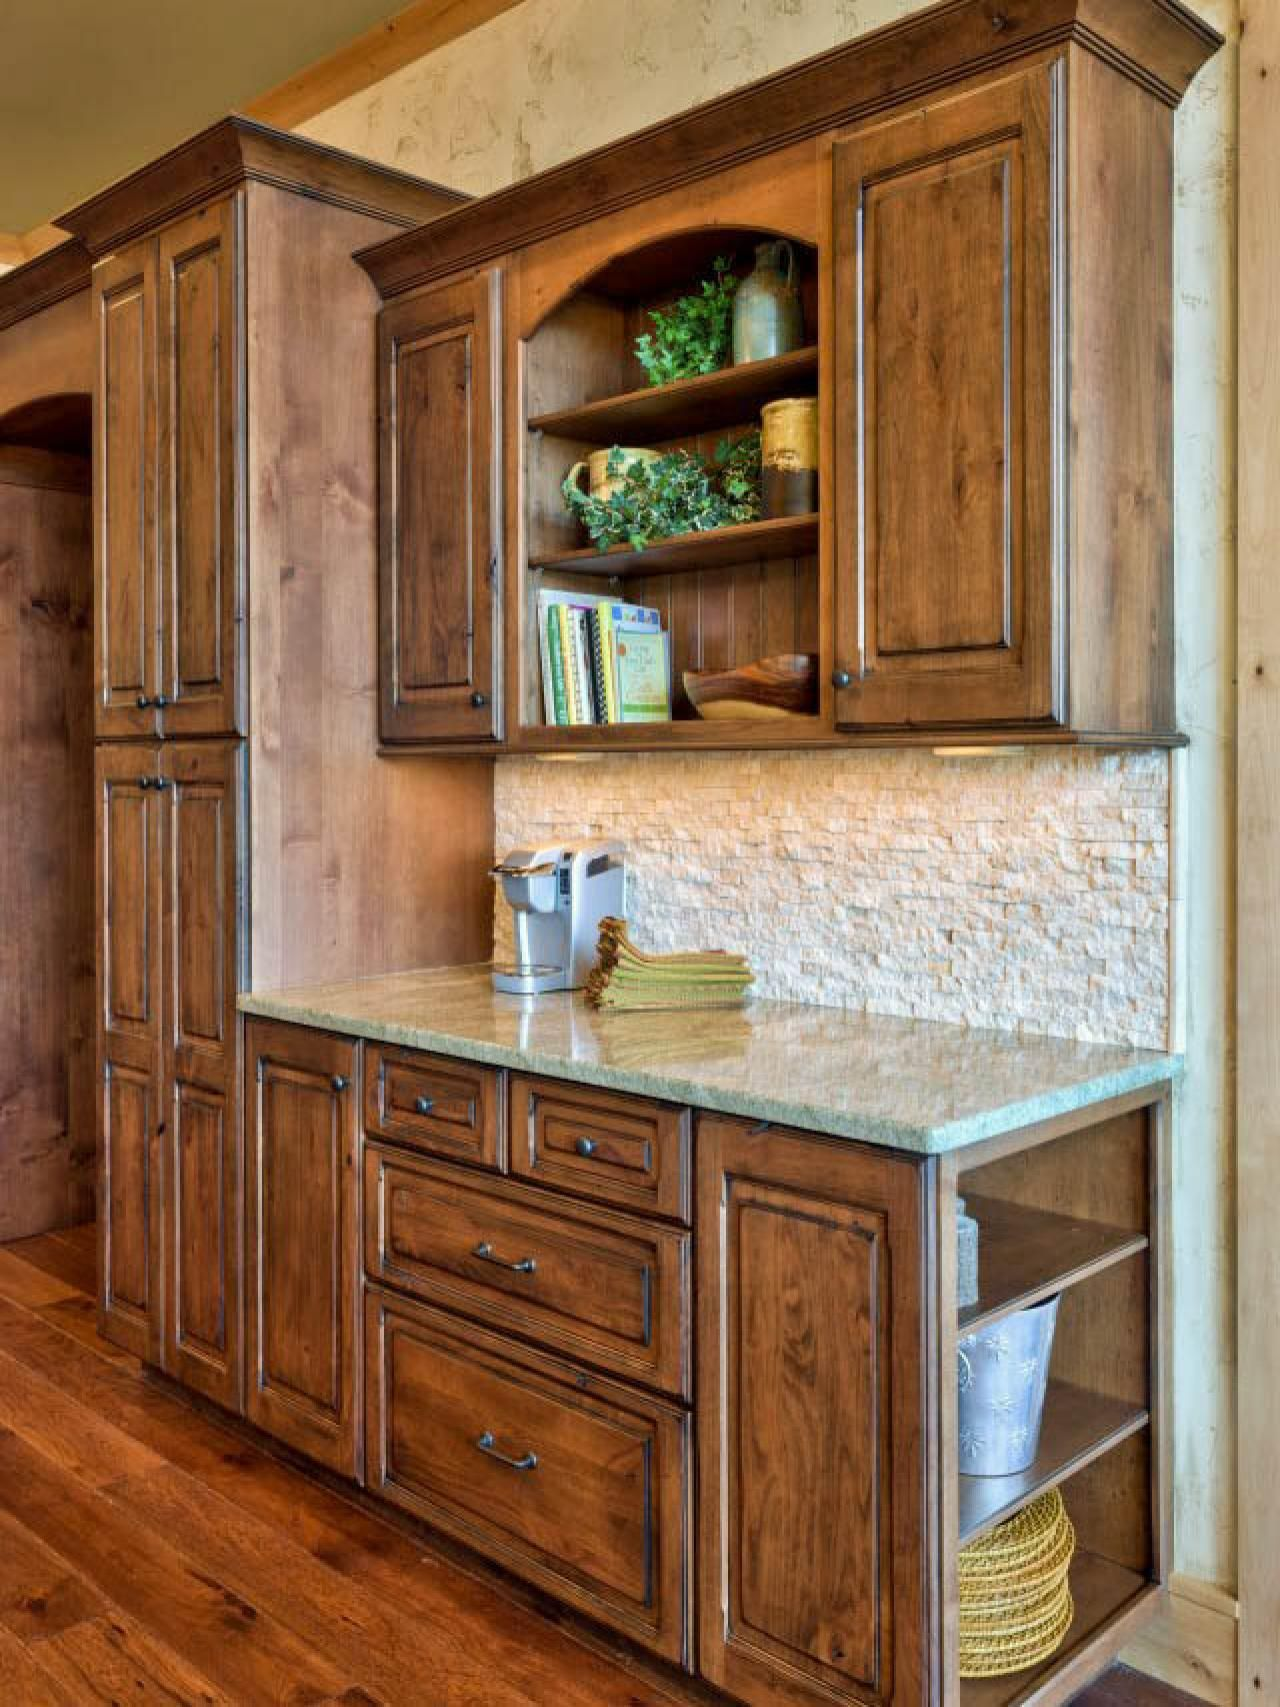 Muebles Cocina Rustica Rustic Stone Kitchen With Country Appeal Kitchens